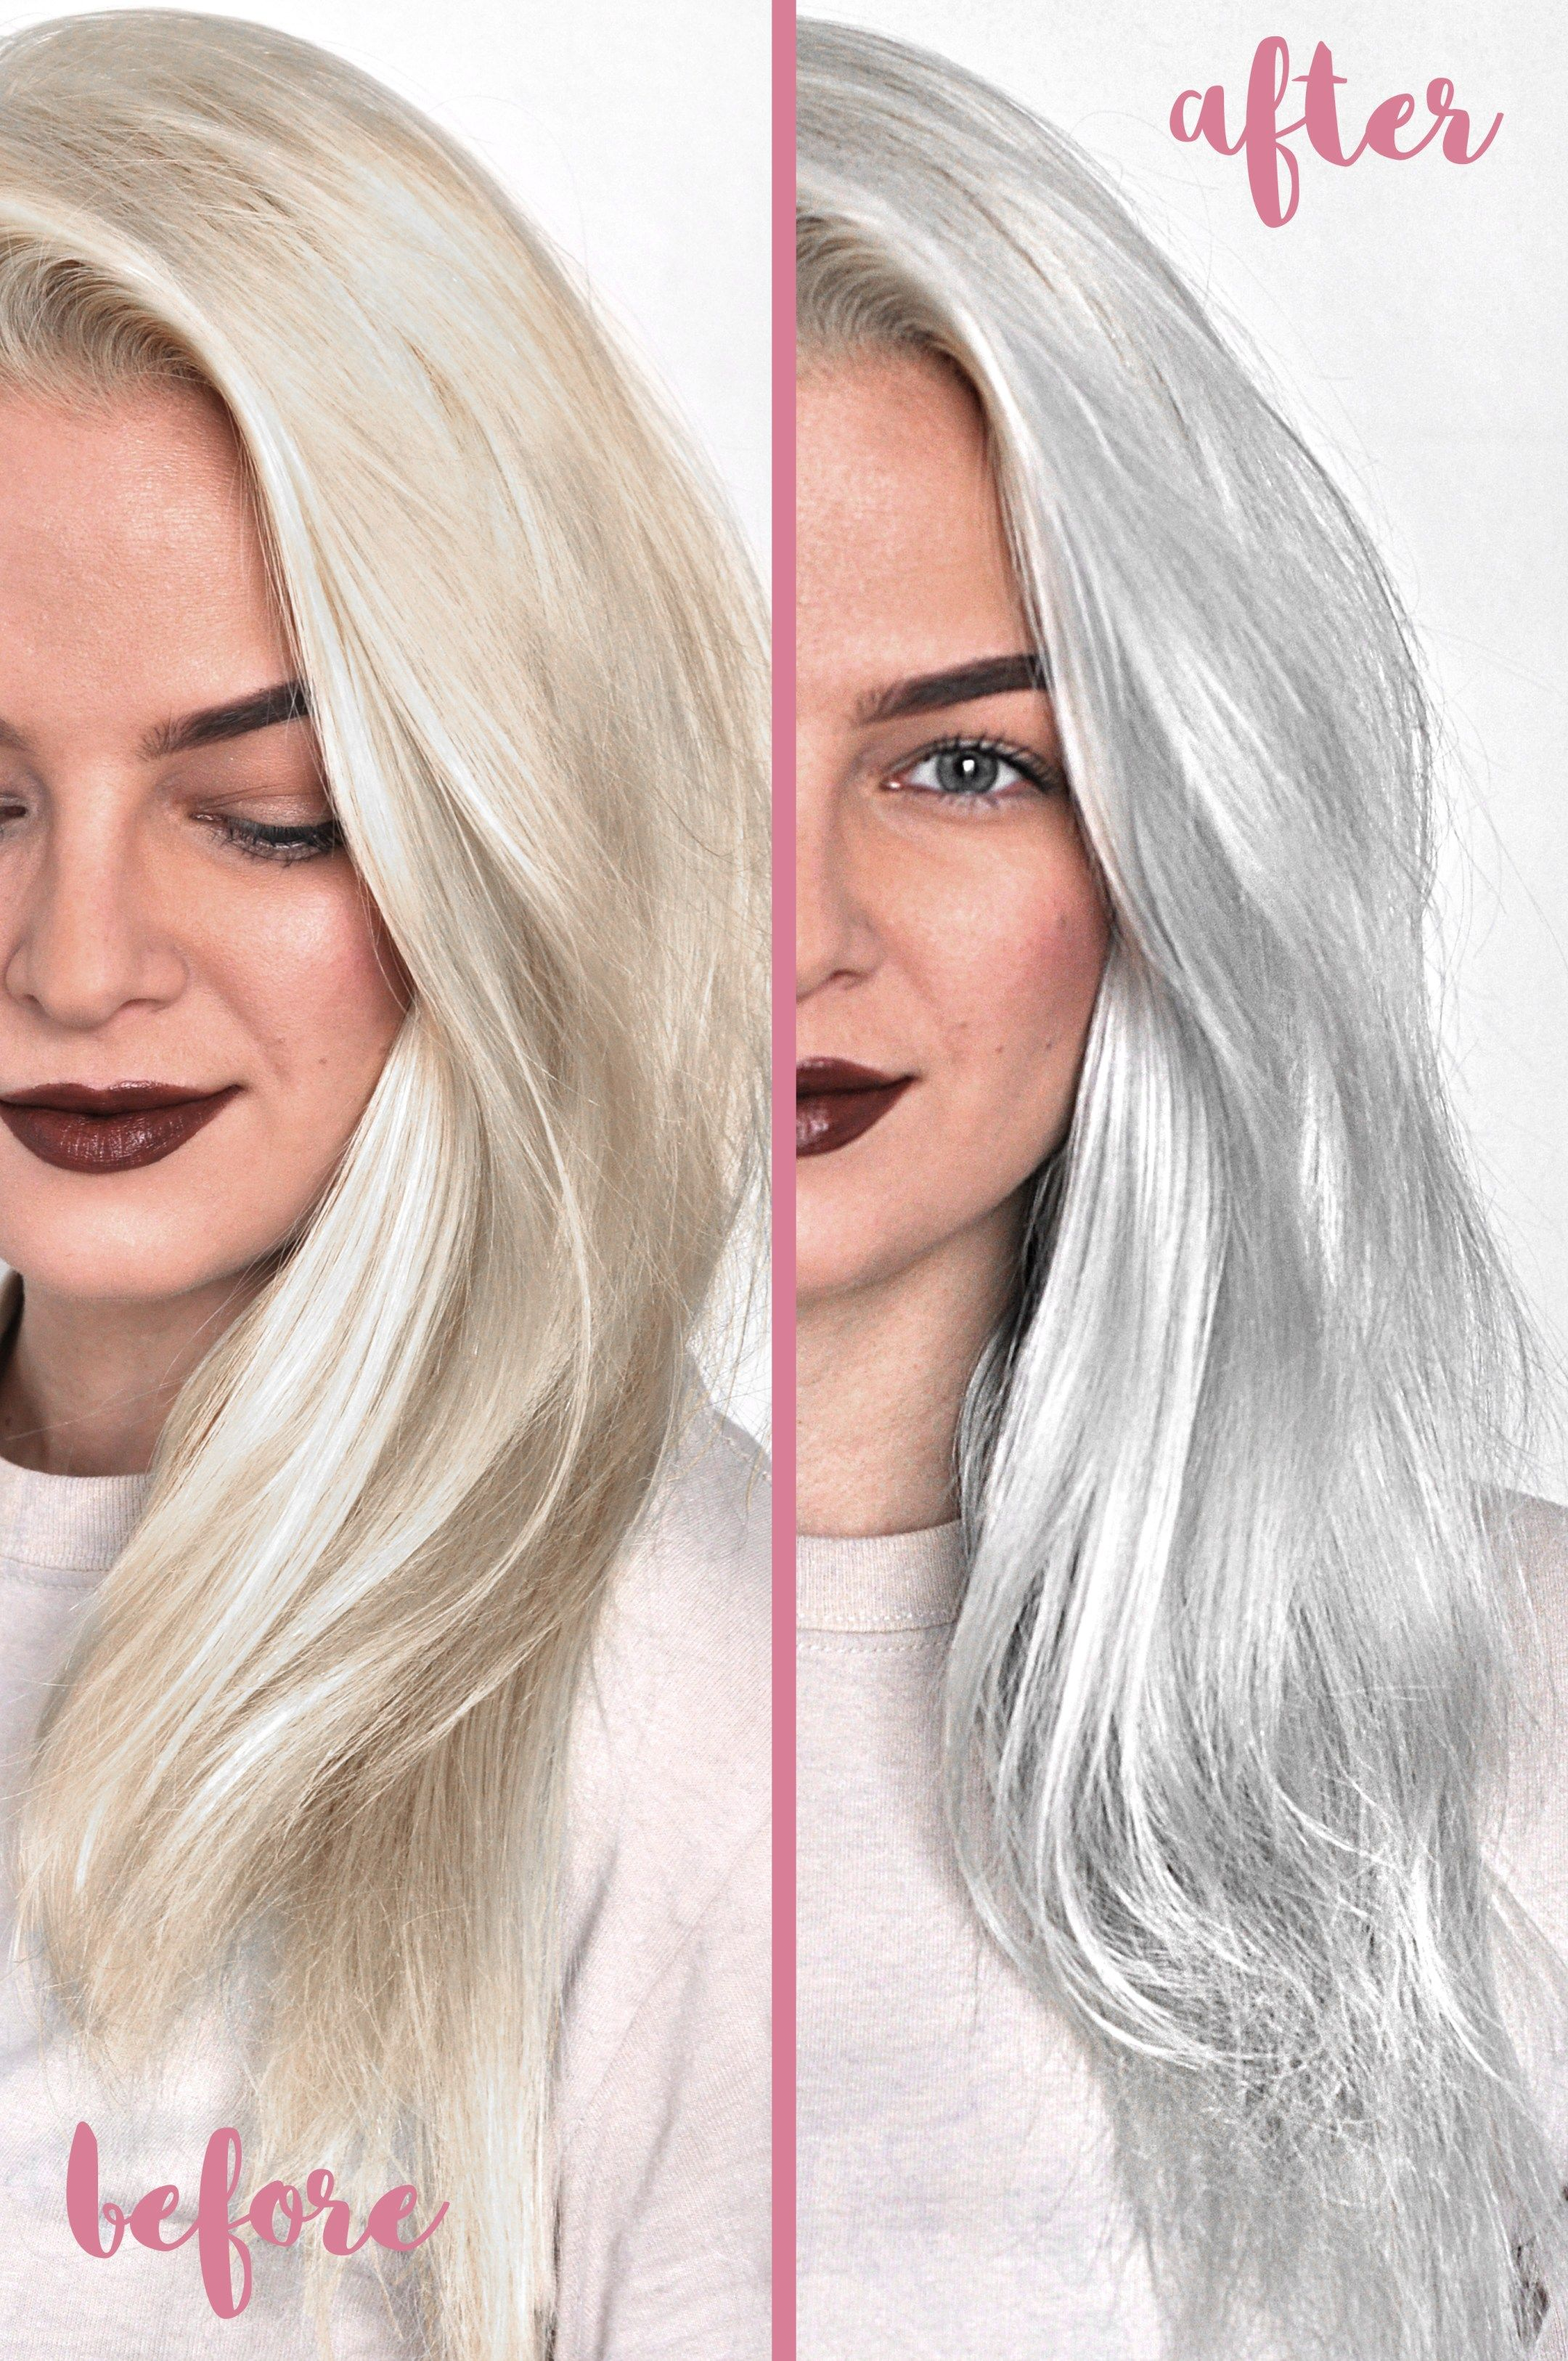 Top 5 Best Sulfate Free Purple Shampoos To Tone Blonde Hair #purpleshampoo